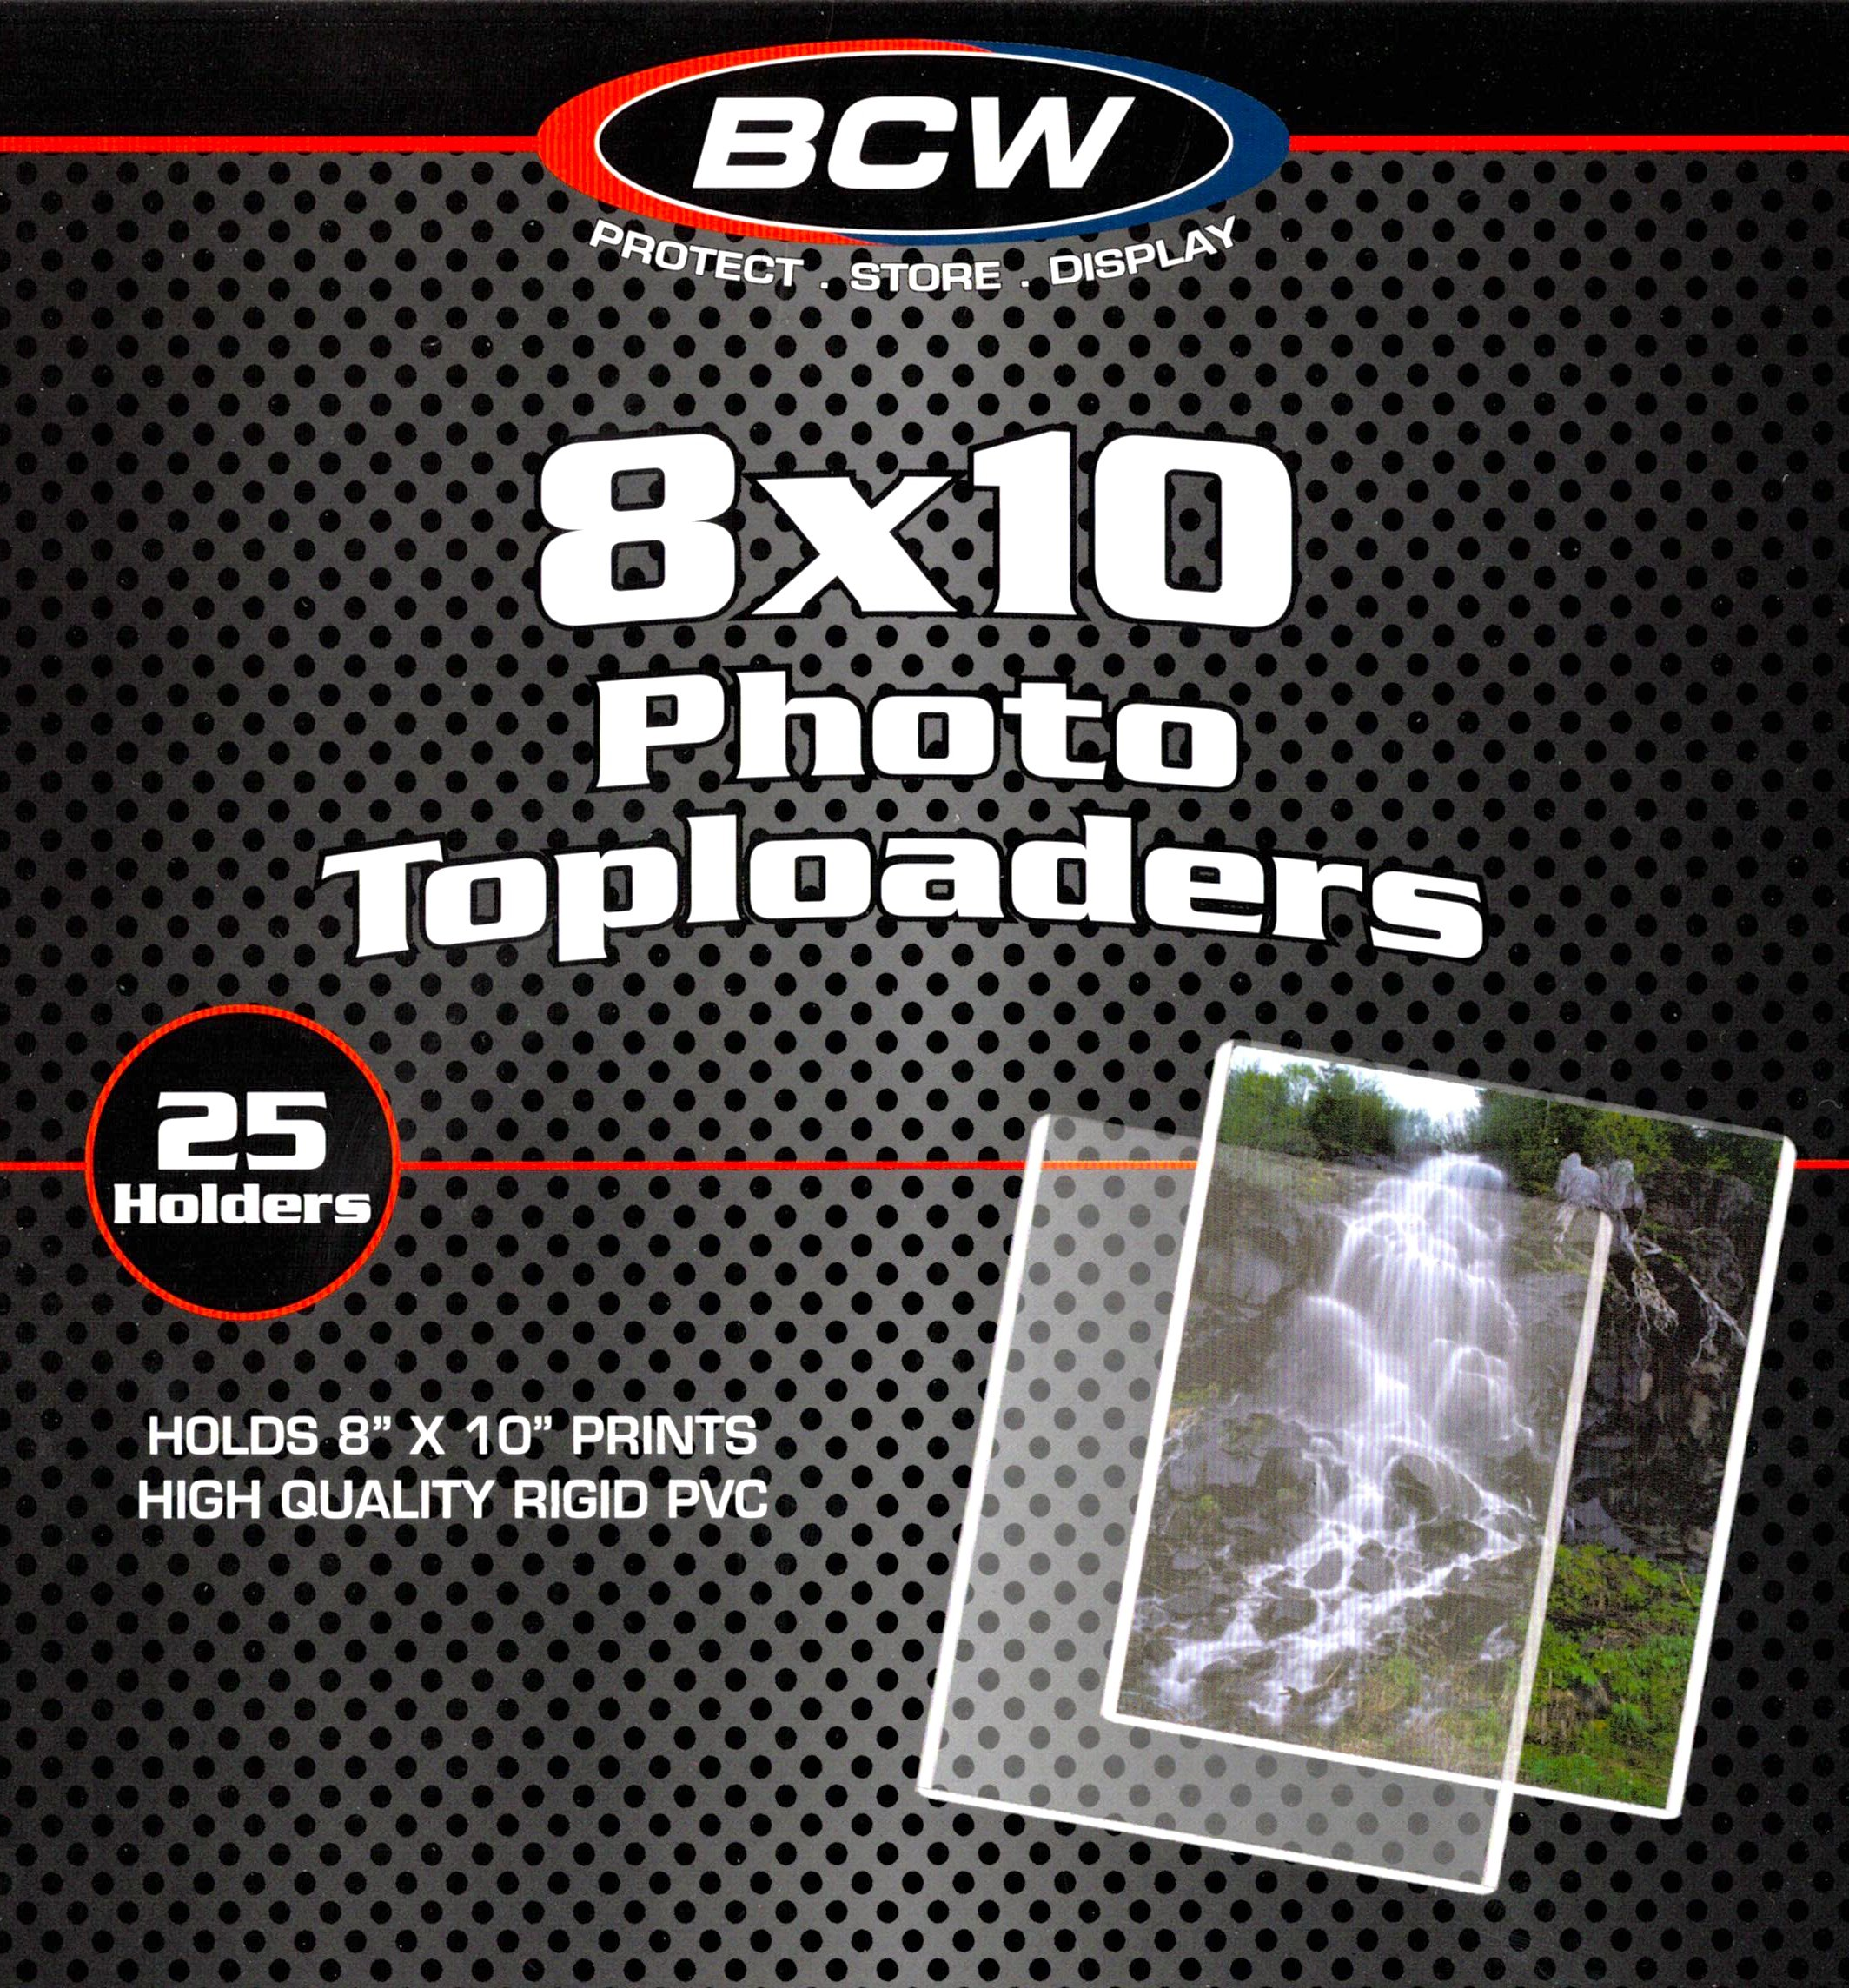 100 BCW 8X10 Photo - Document Topload Holder by BCW (Image #2)